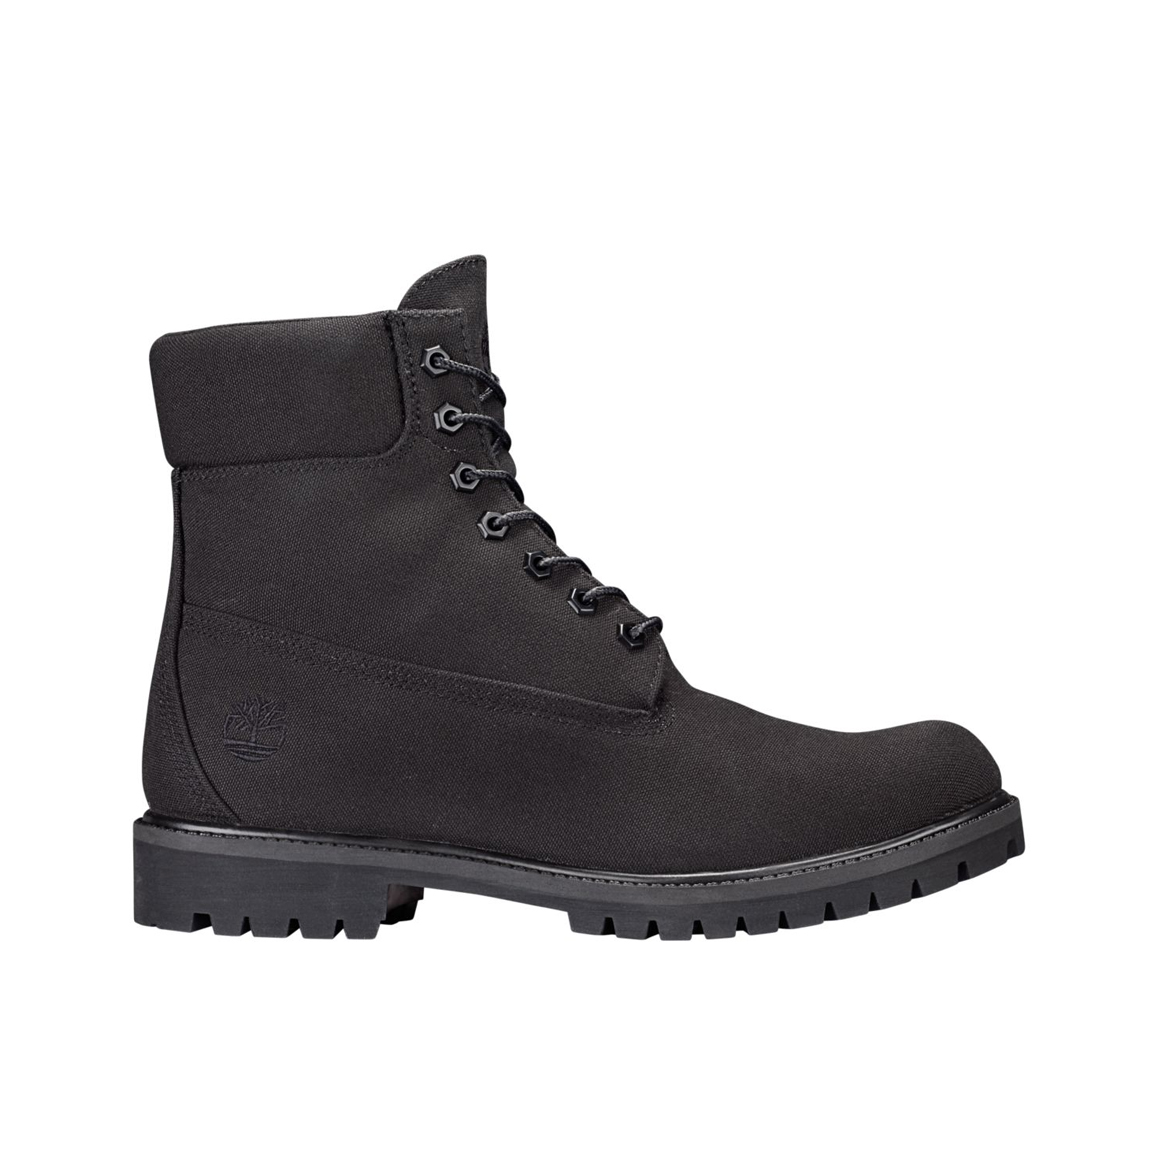 Timberland Canvas Boot Thread Recycled.jpg